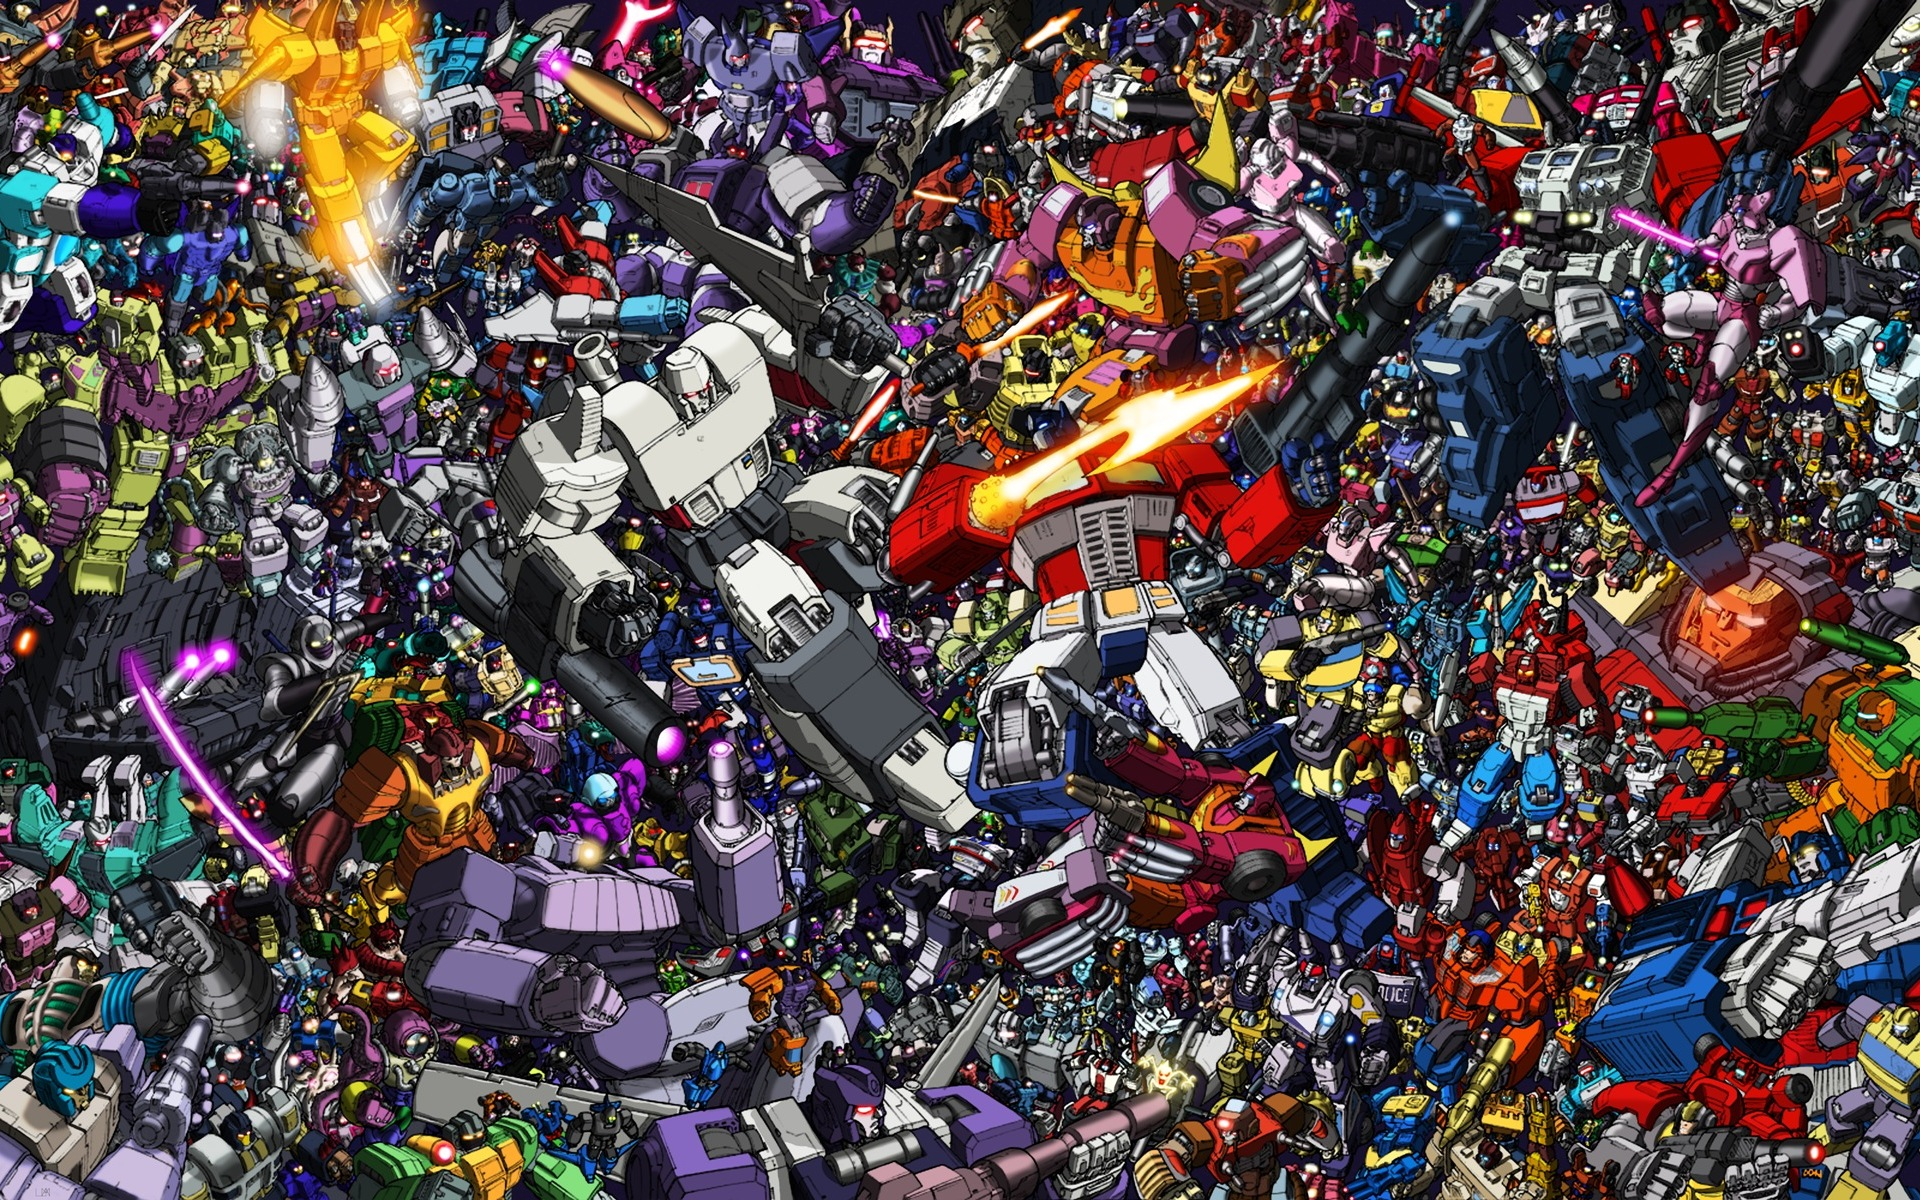 3d Wallpaper Of Cars And Bikes Transformers Wallpaper 5211 1920x1200px